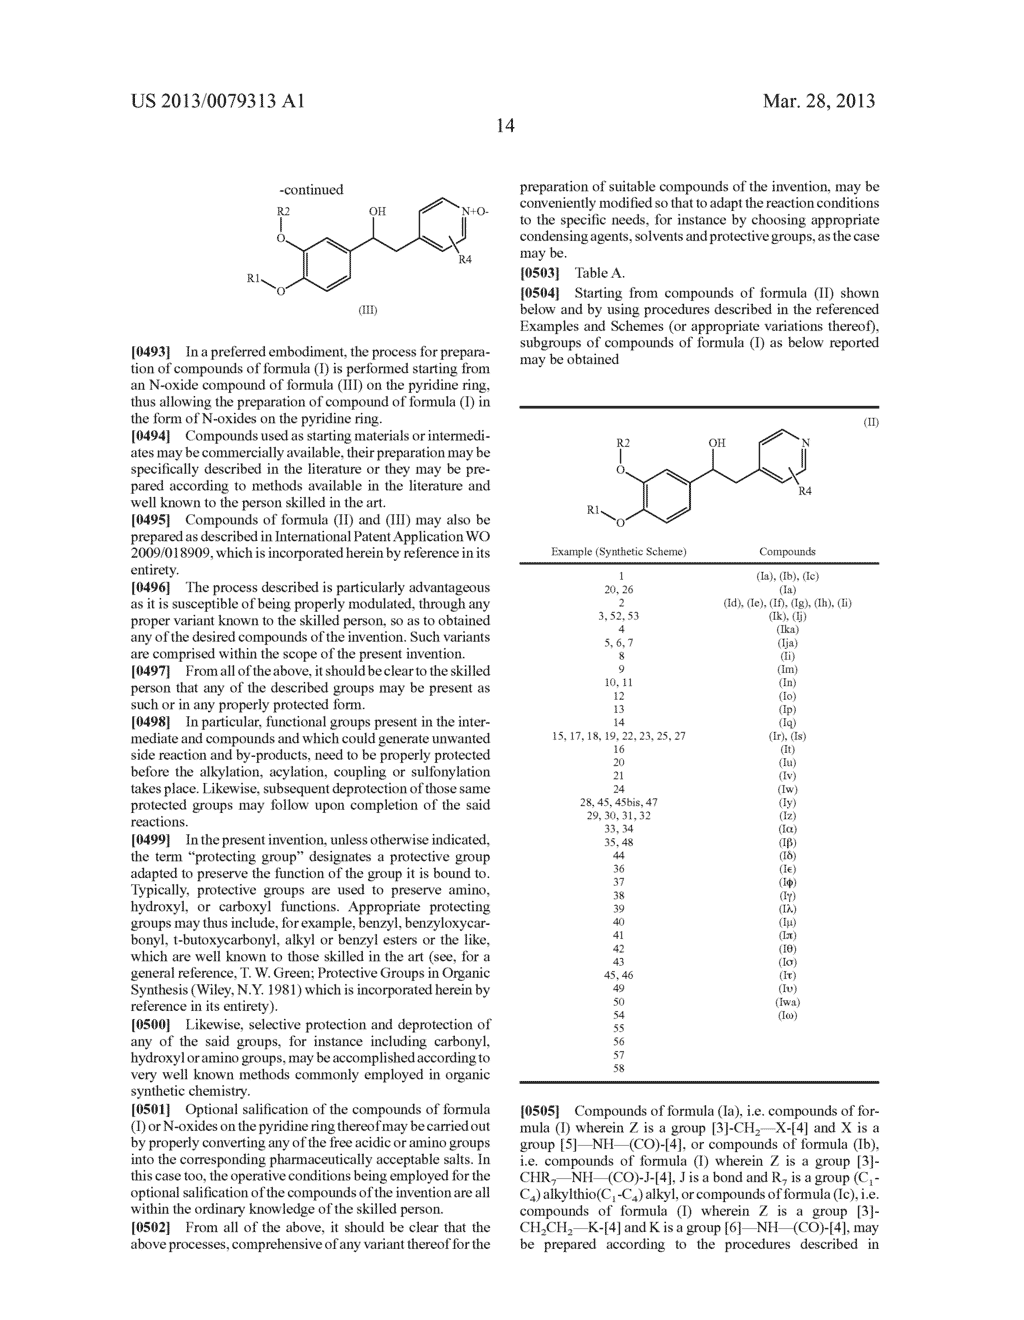 DERIVATIVES OF 1-PHENYL-2-PYRIDINYL ALKYL ALCOHOLS AS PHOSPHODIESTERASE     INHIBITORS - diagram, schematic, and image 15